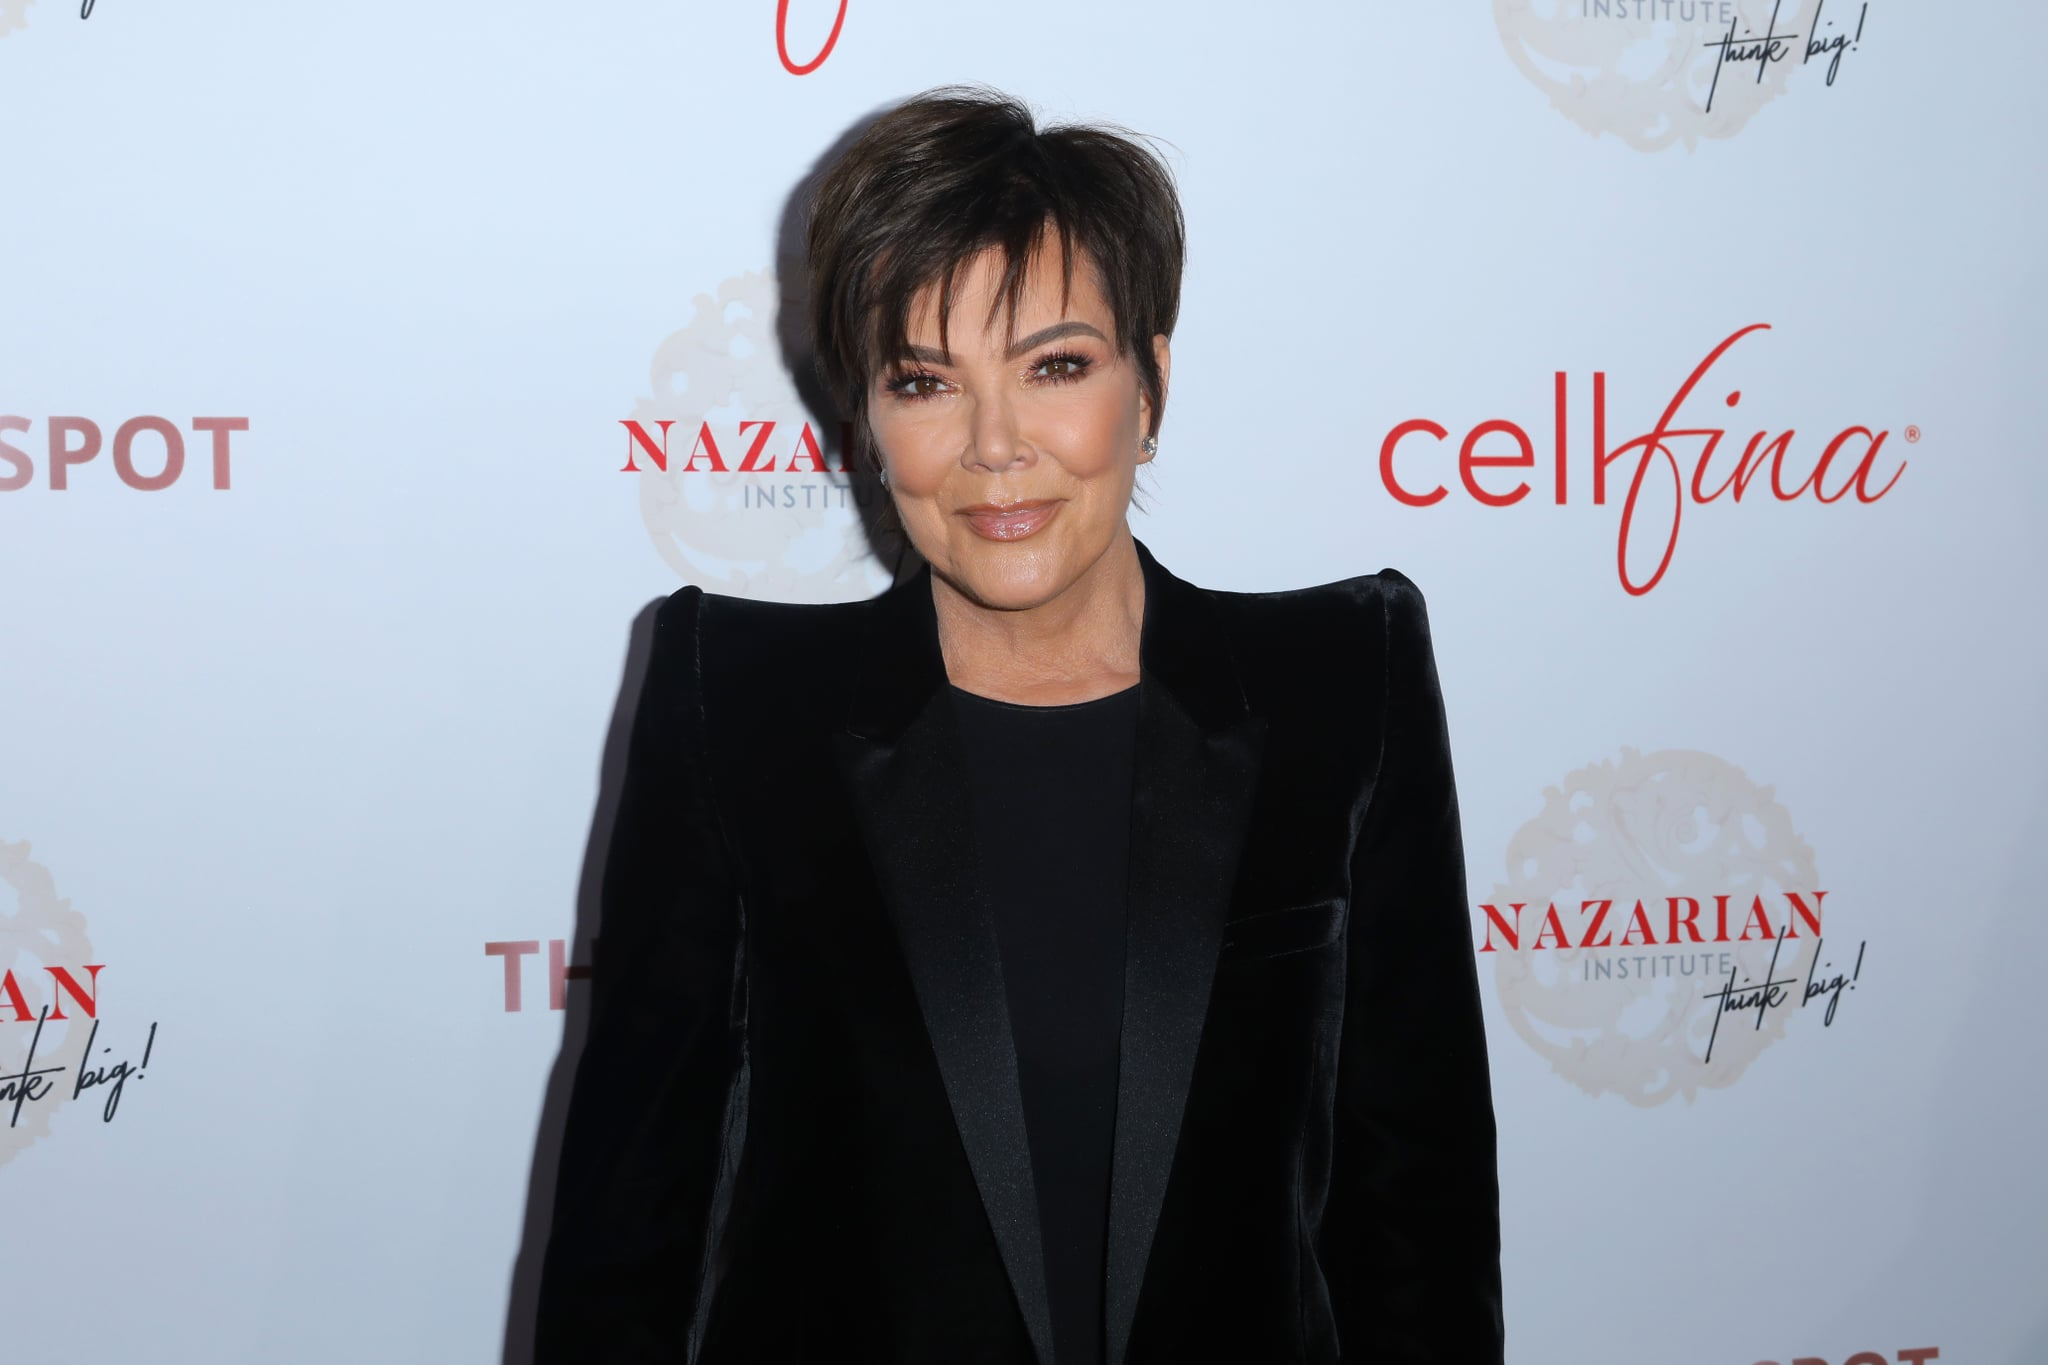 WEST HOLLYWOOD, CALIFORNIA - JANUARY 11: Kris Jenner attends the Nazarian Institute's ThinkBIG 2020 Conference featuring keynote speaker Kris Jenner at 1 Hotel West Hollywood on January 11, 2020 in West Hollywood, California. (Photo by JC Olivera/Getty Images)